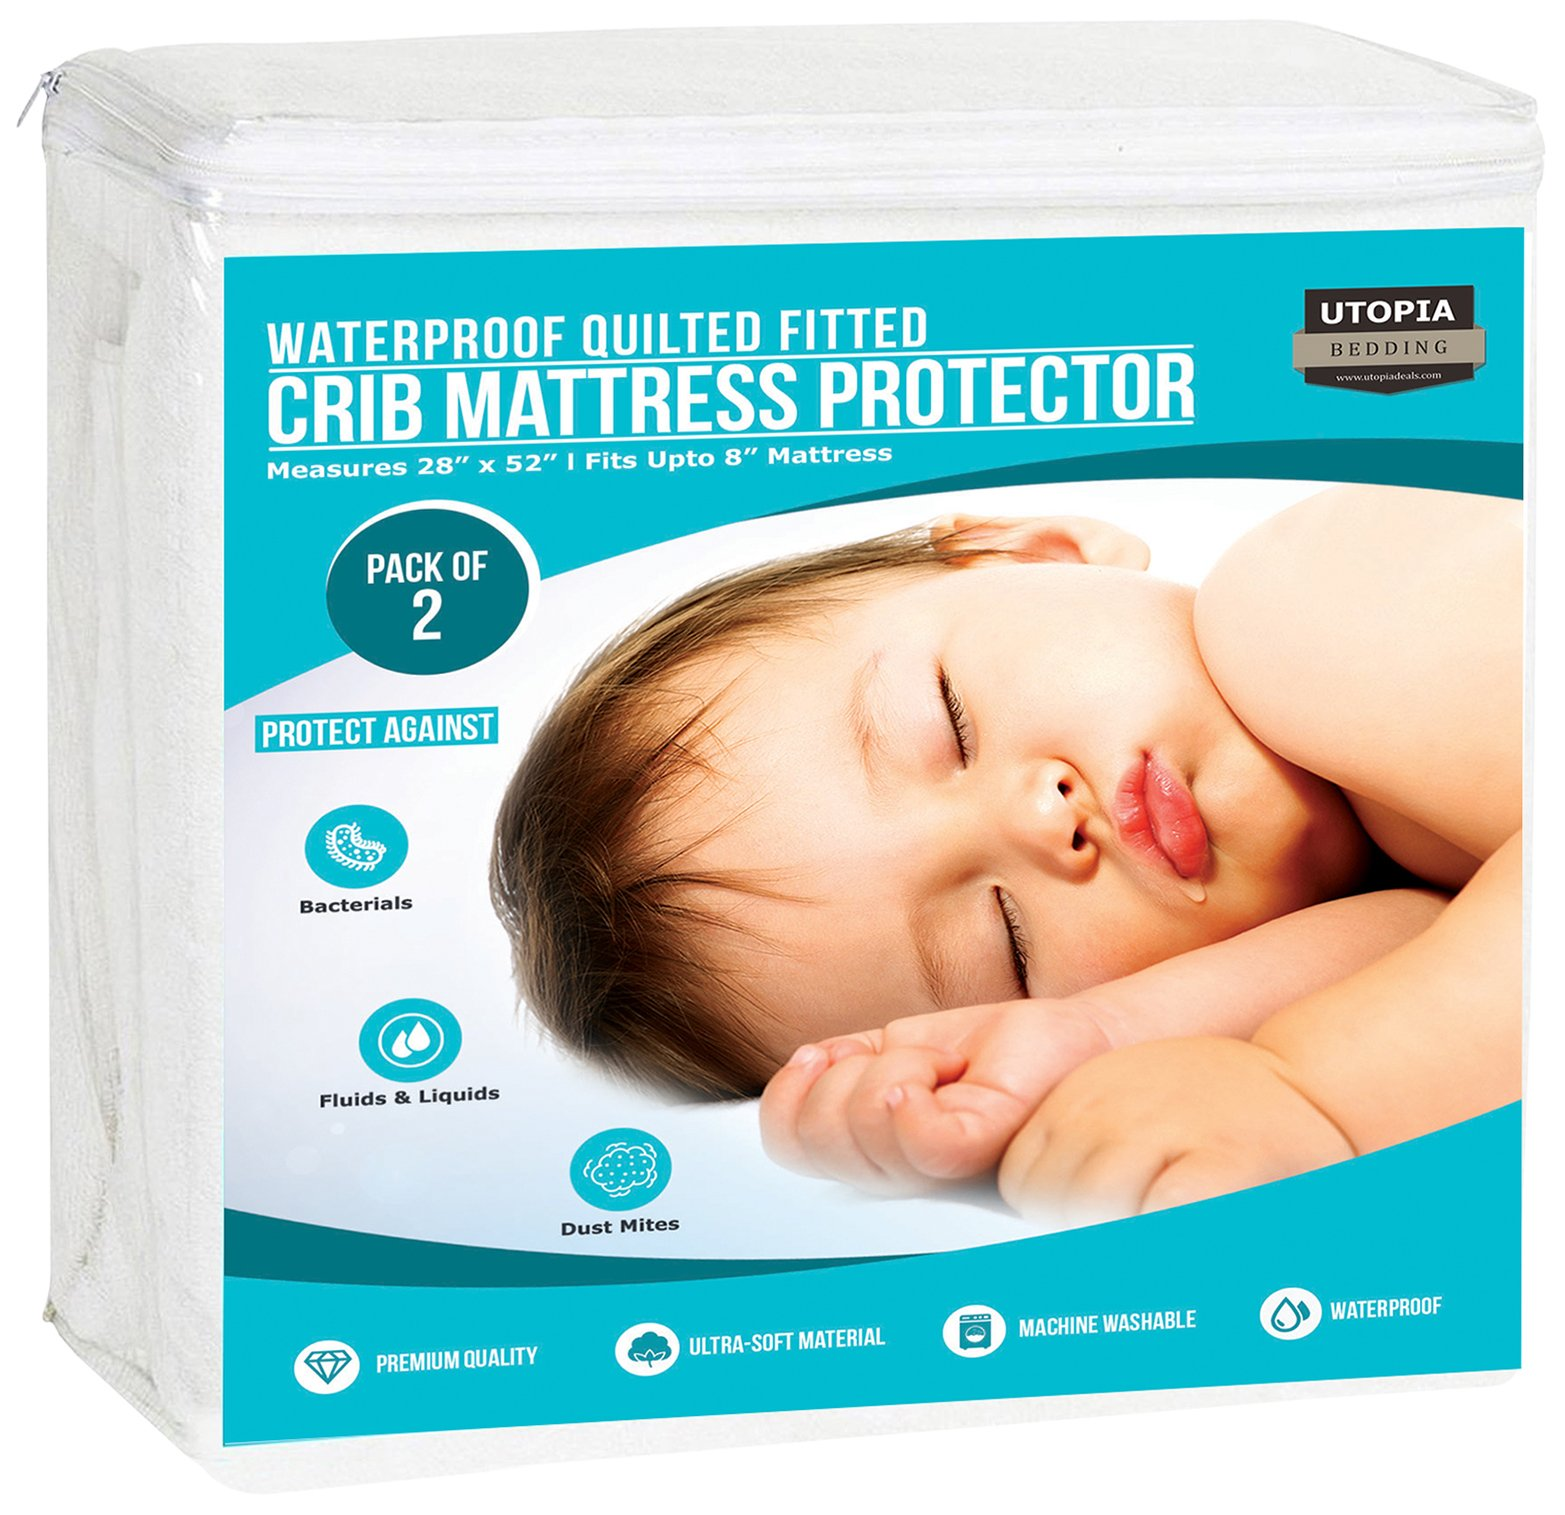 Utopia Bedding Waterproof Crib Mattress Protector - Breathable Mattress Cover - Hypoallergenic Quilted Crib Fitted - Cradle Mattress Pad (Pack of 2)